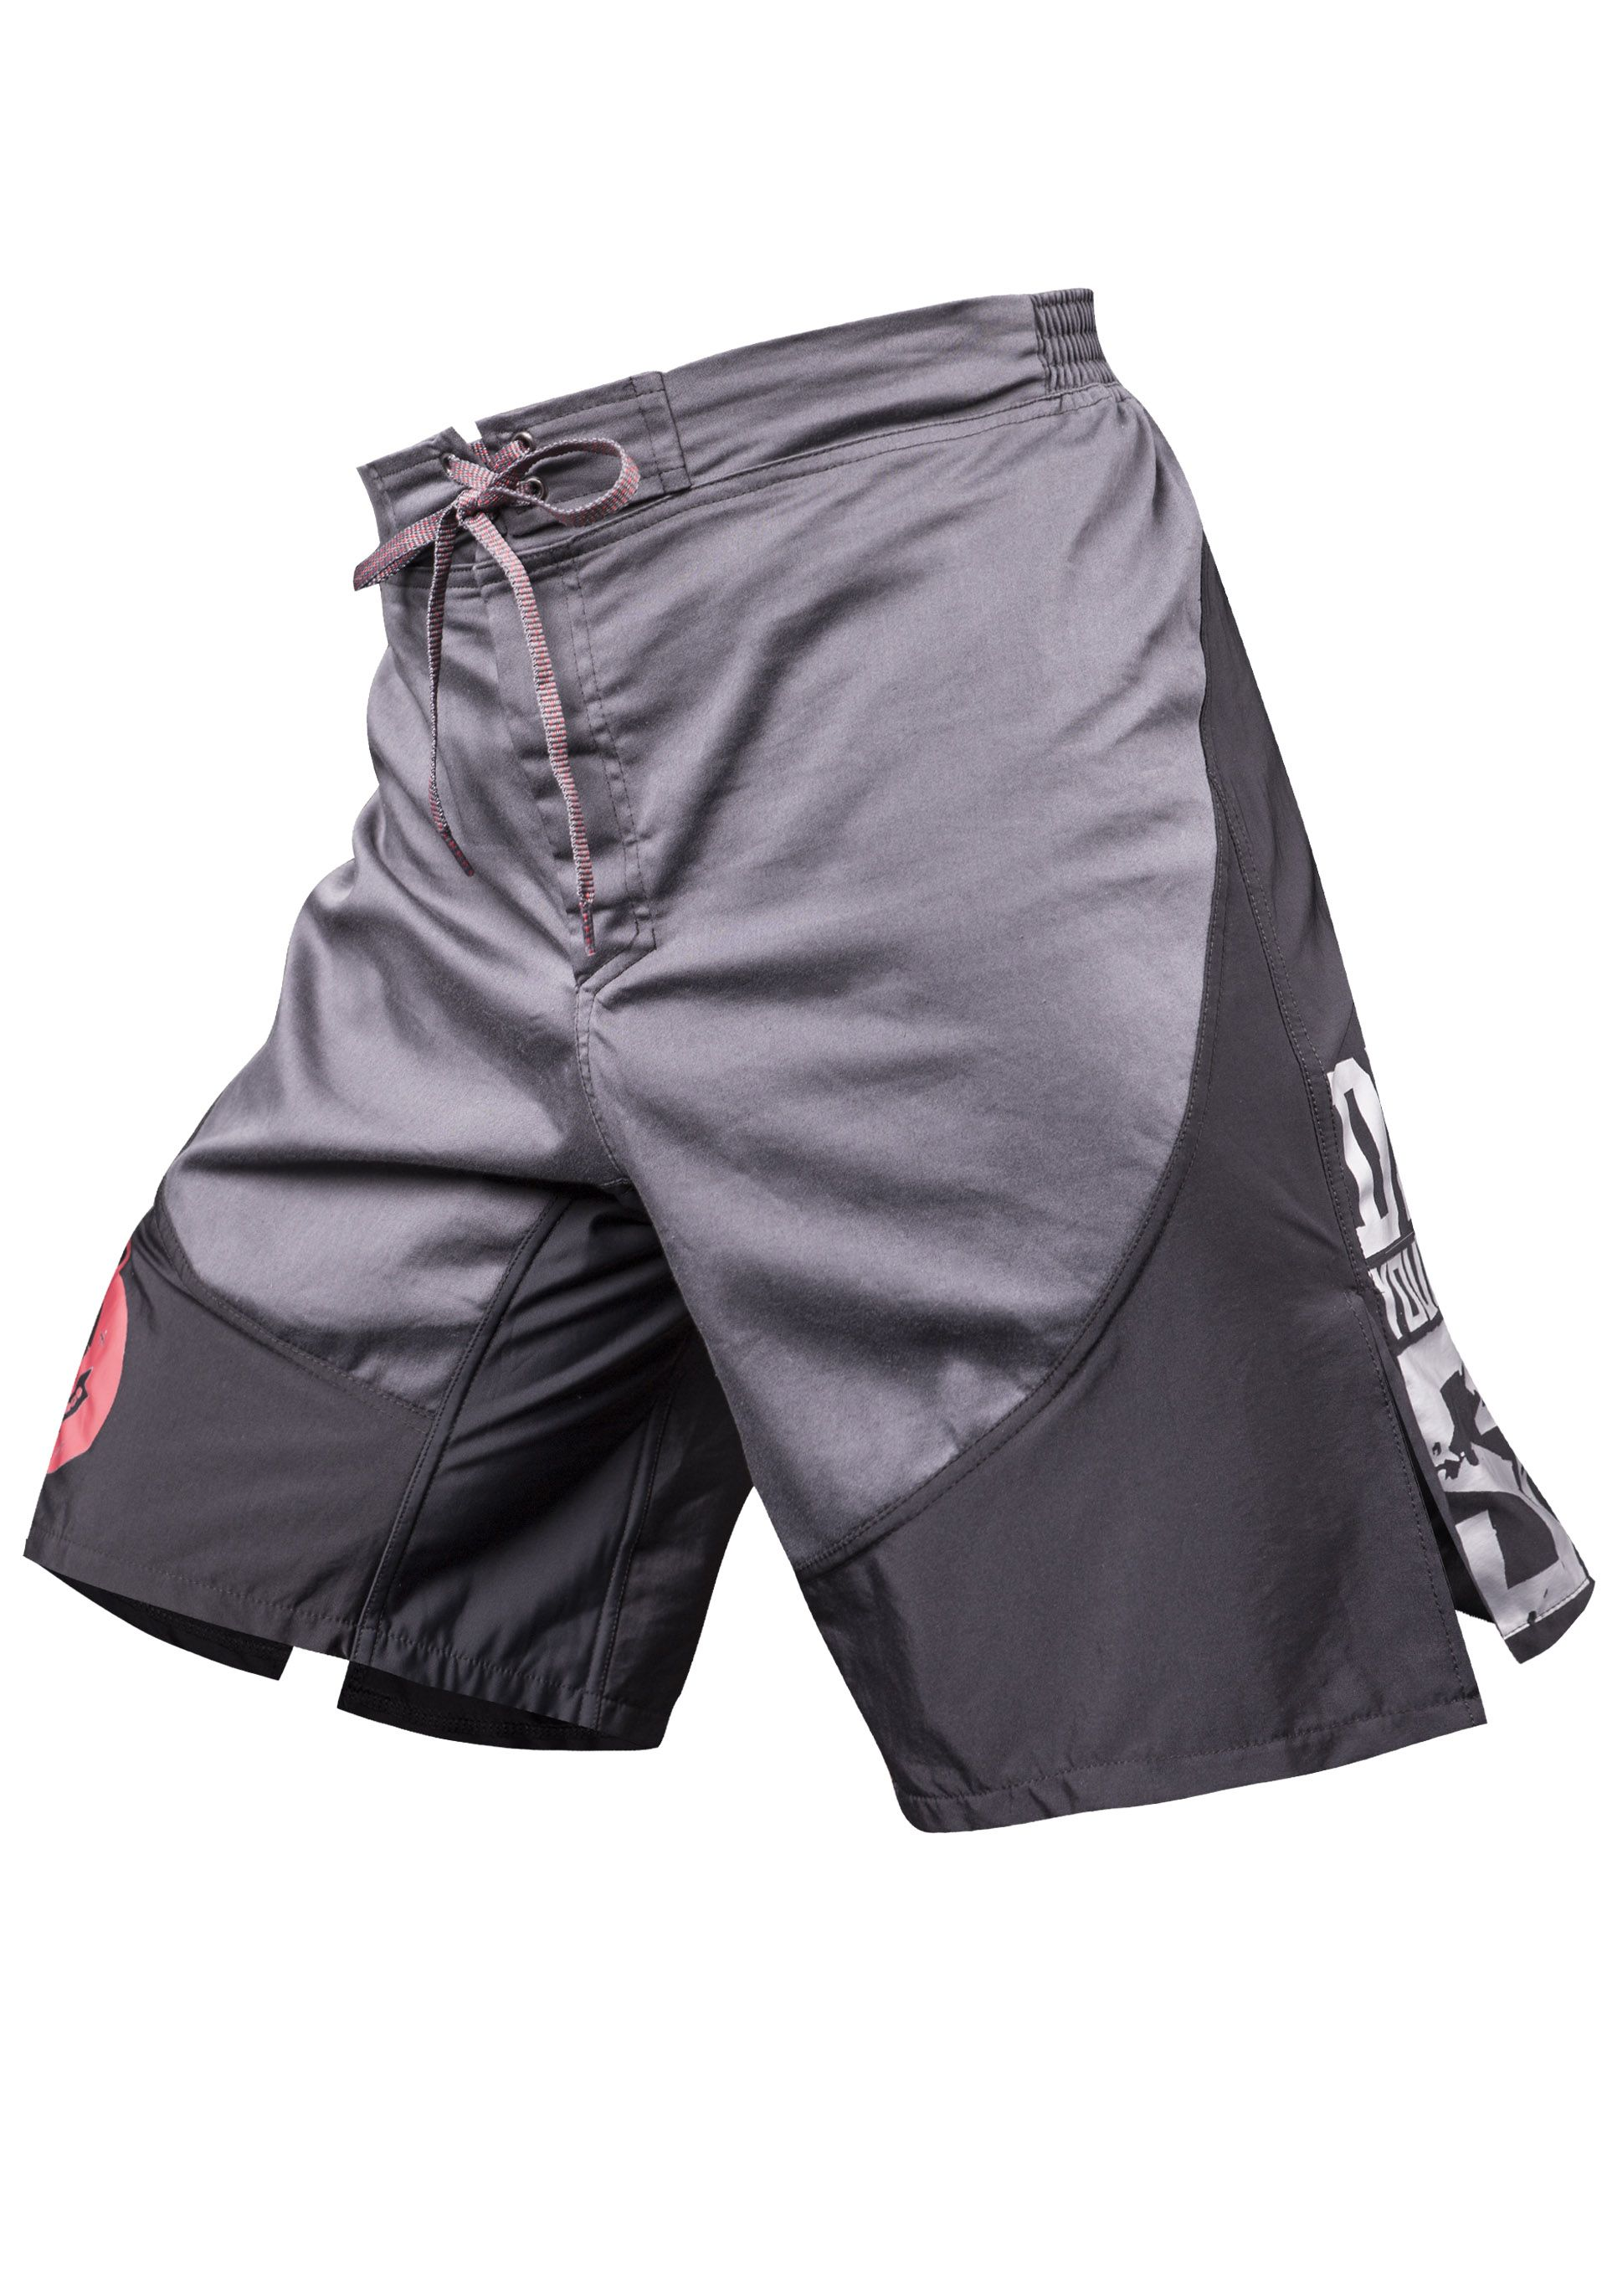 97d5835cd1ed Crossfit shorts for men! New brand for Crossfitters contact ...